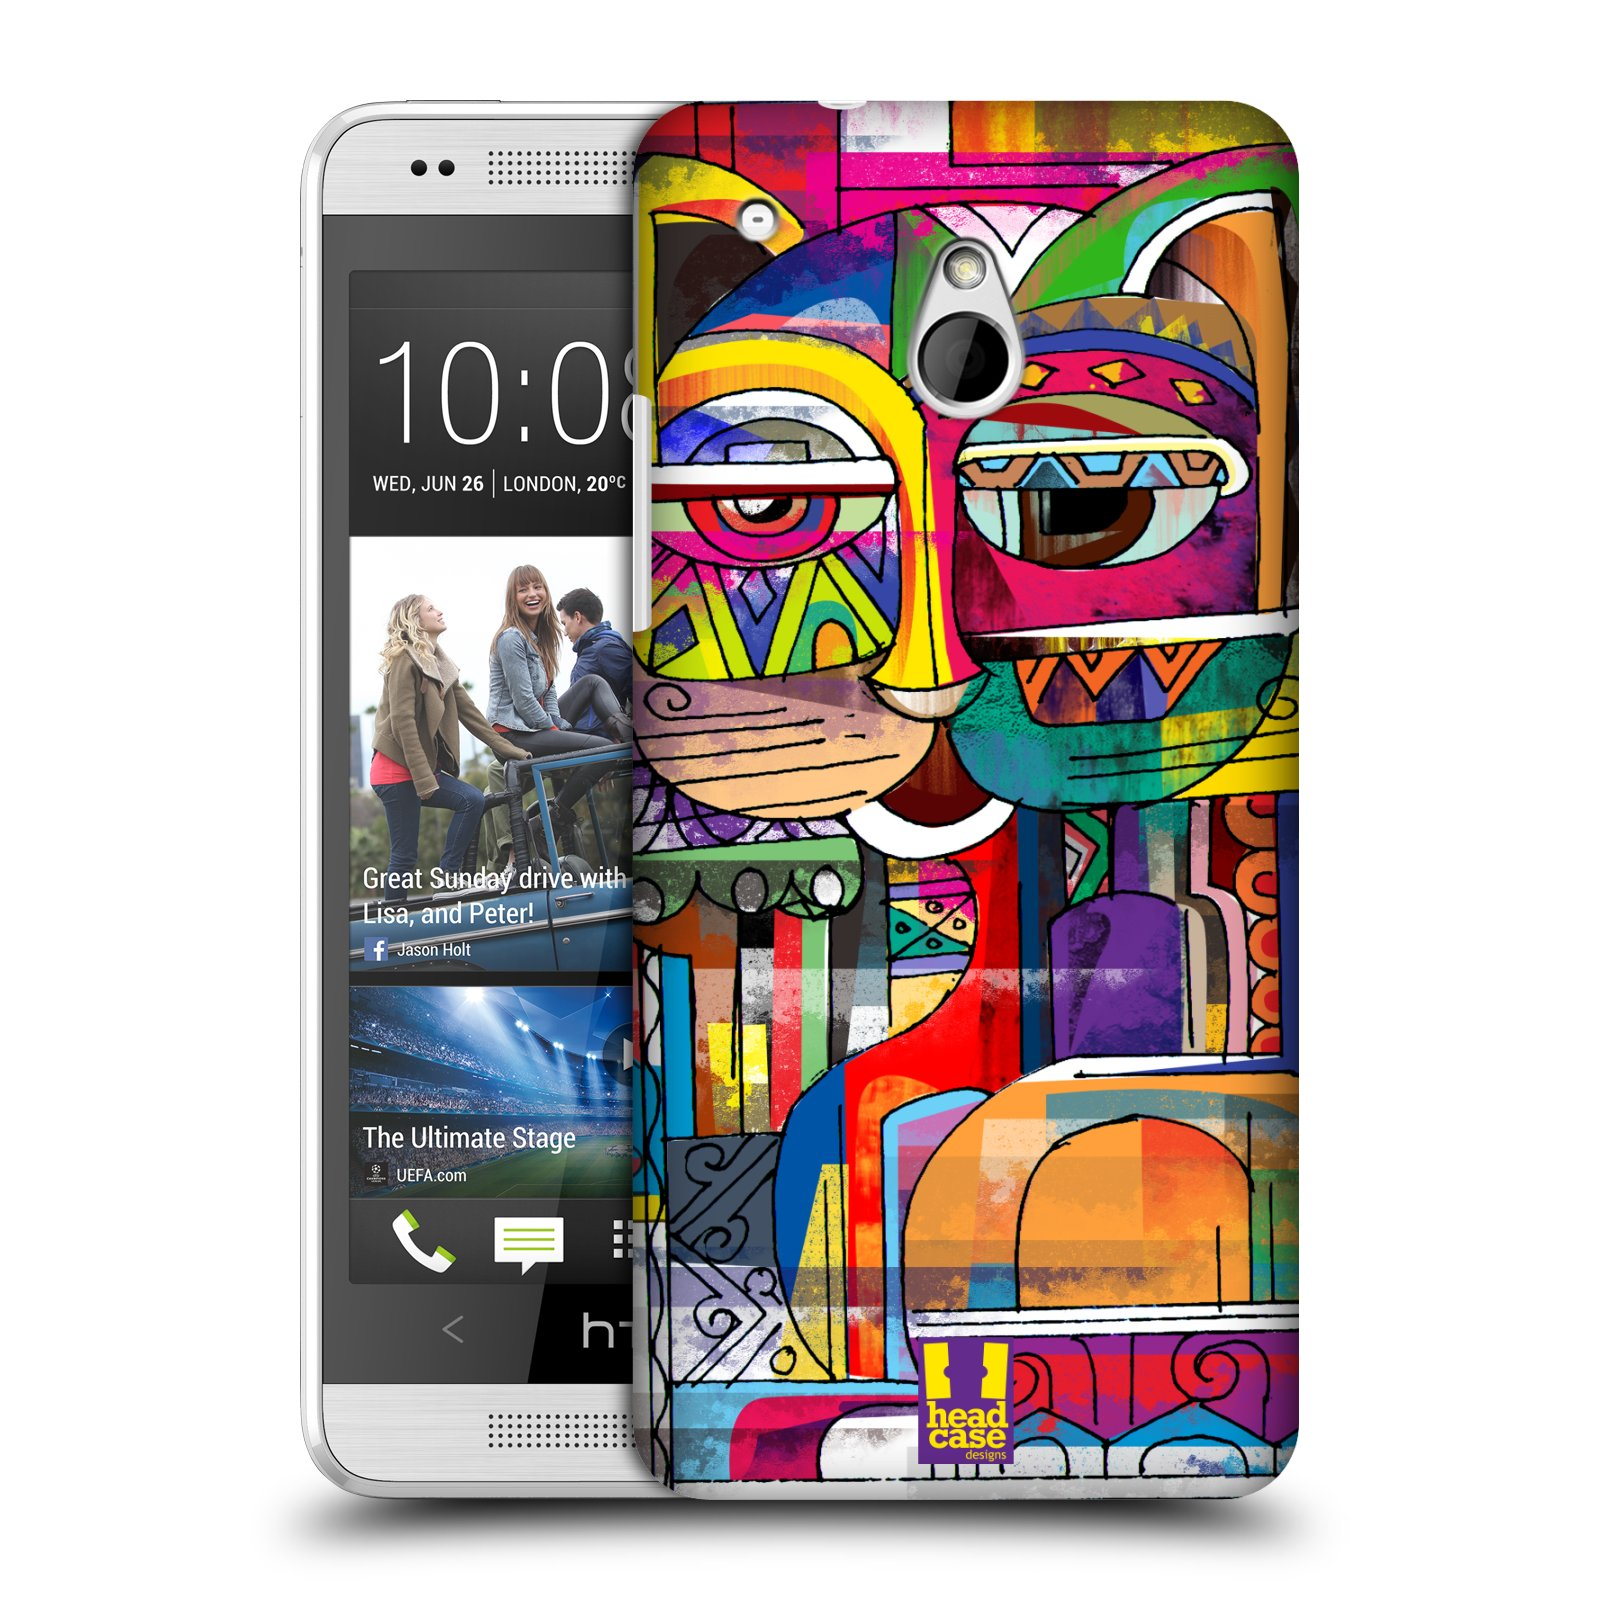 HEAD CASE DESIGNS AZTEC CAT CASE COVER FOR HTC ONE MINI